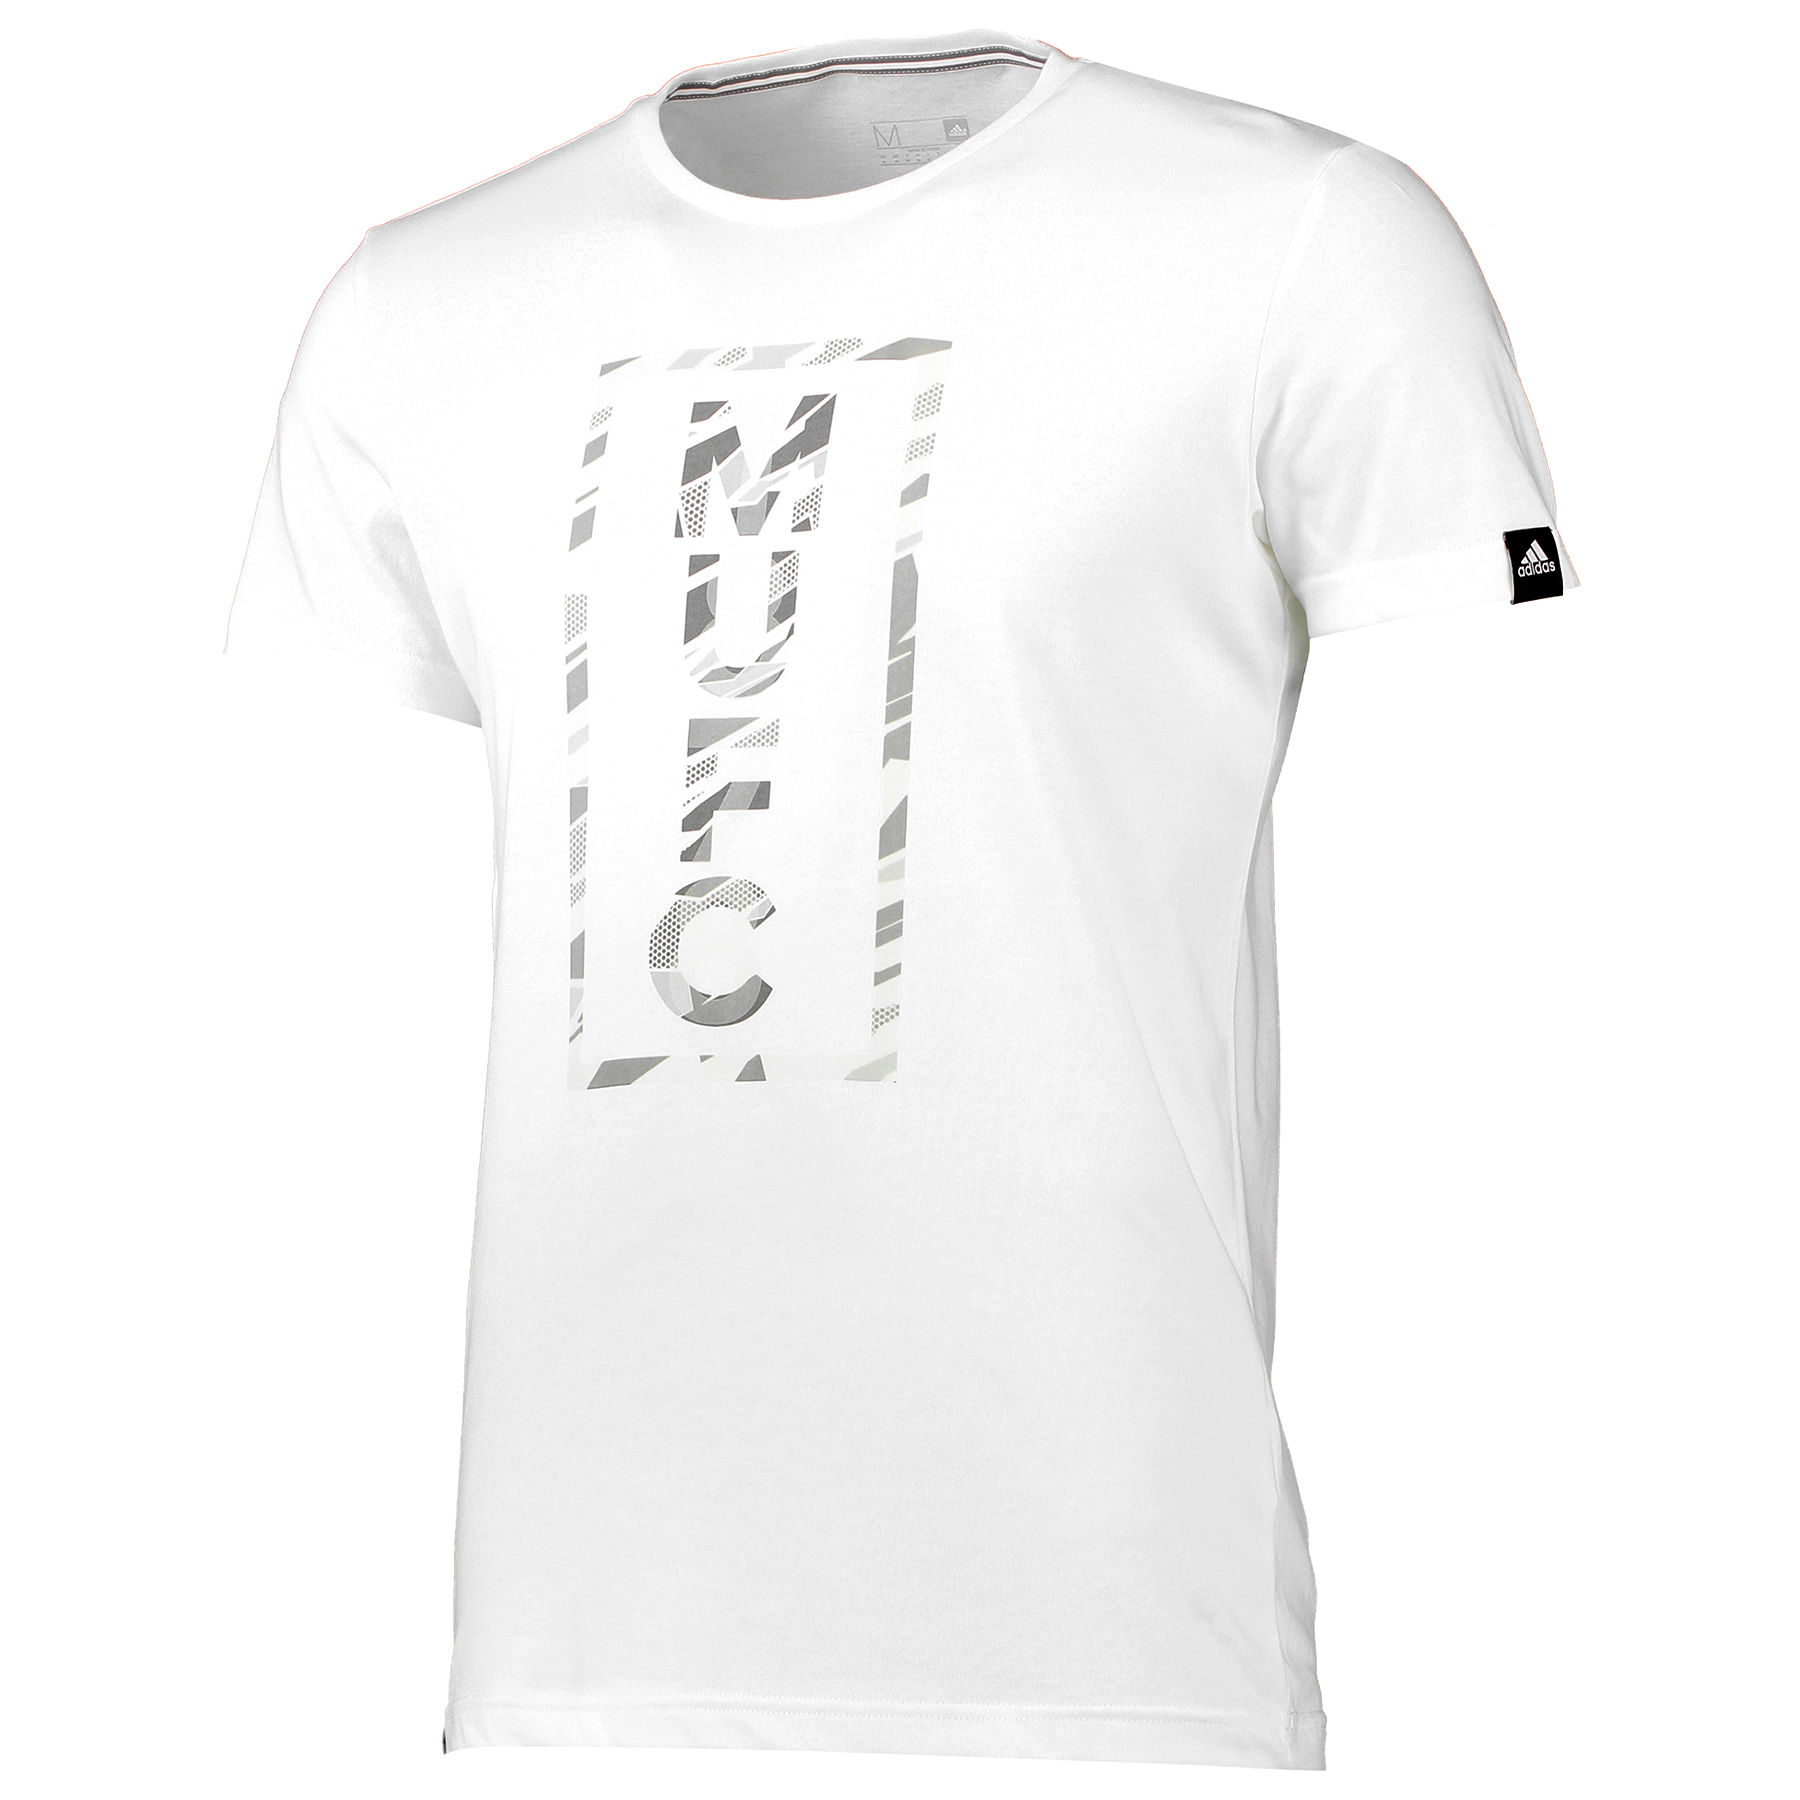 Manchester United Graphic T-Shirt - White